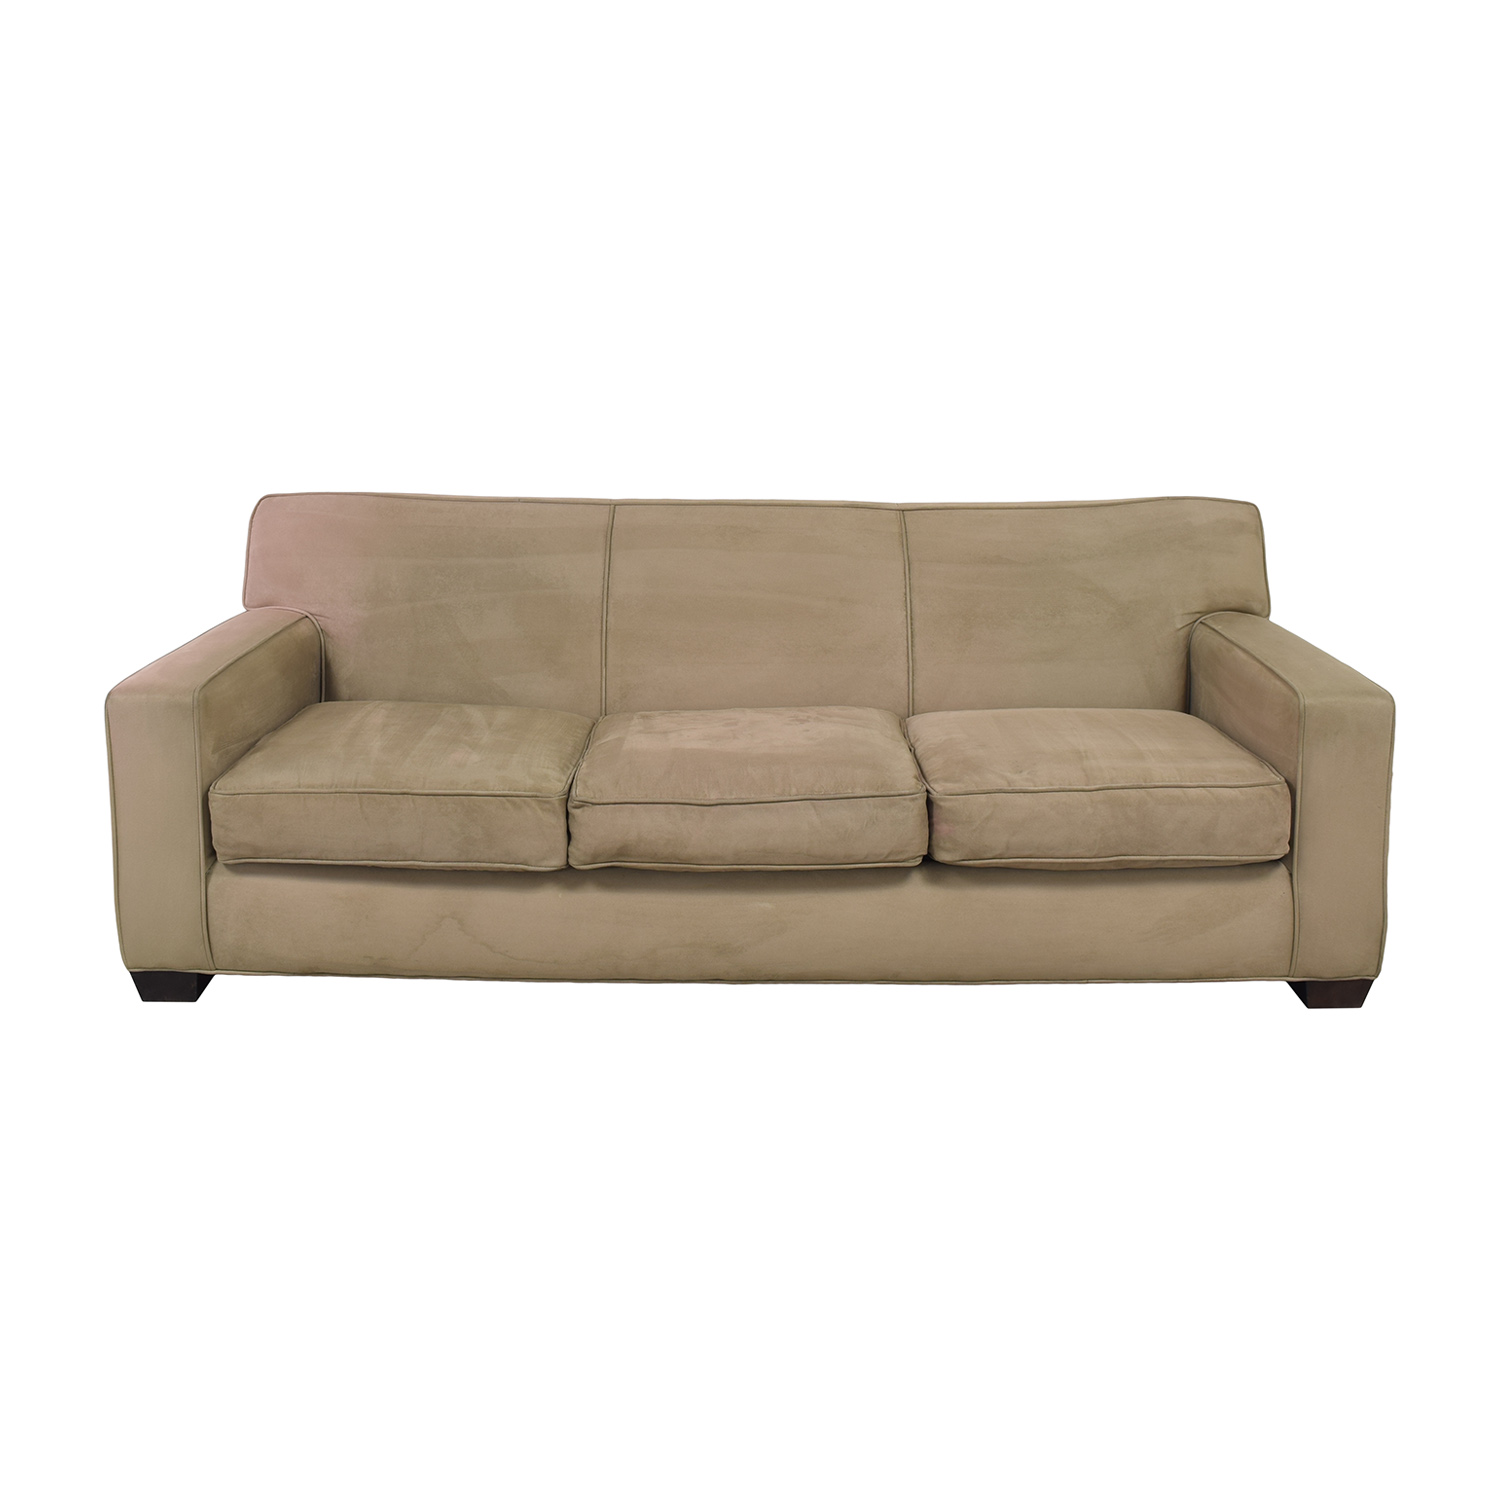 Crate & Barrel Three Cushion Sofa sale